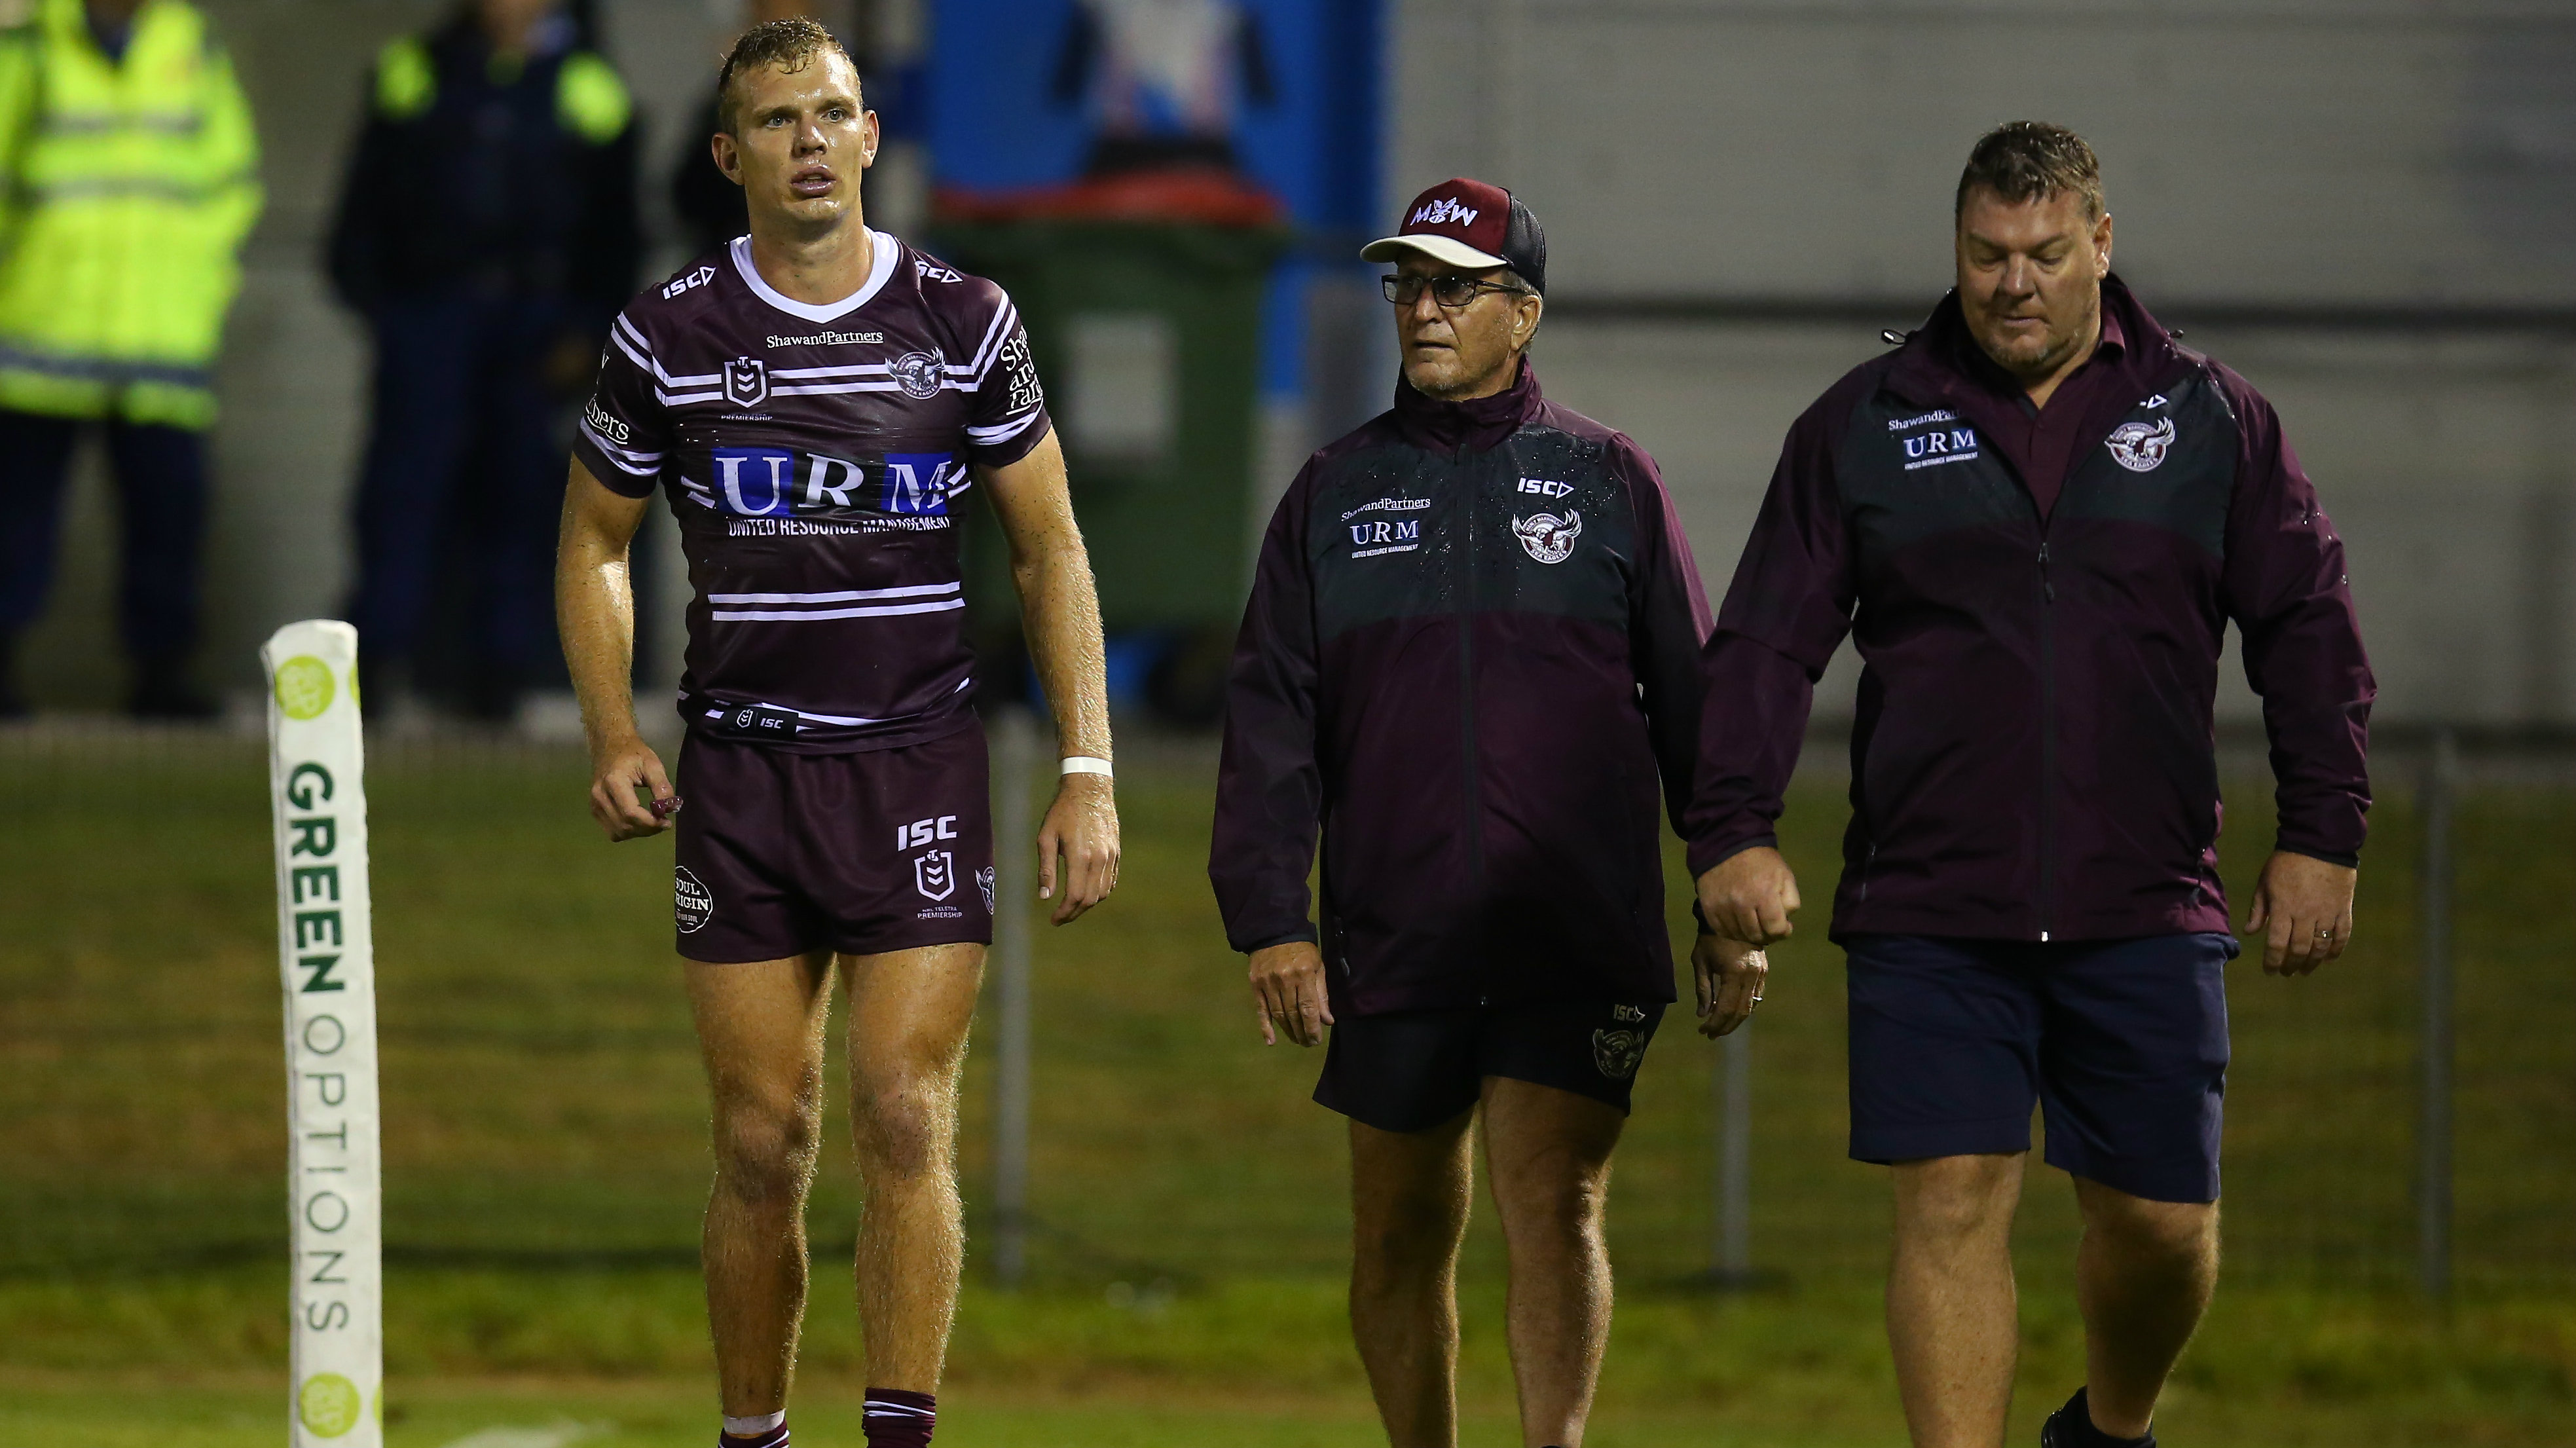 Tom Trbojevic injury: Manly Sea Eagles star injured in trial match